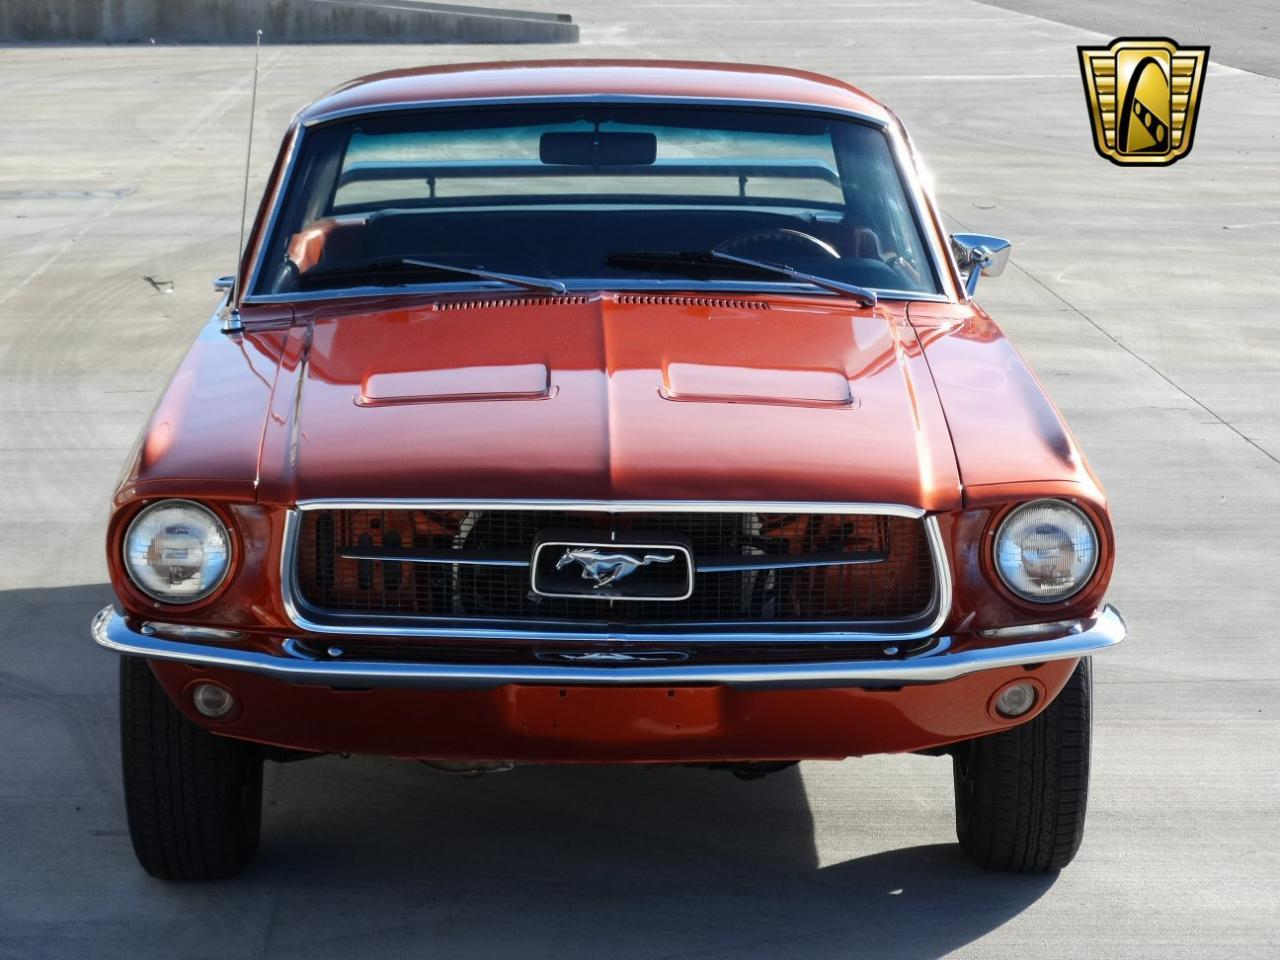 Large Picture of Classic 1967 Ford Mustang located in Georgia - $19,995.00 - KF5L